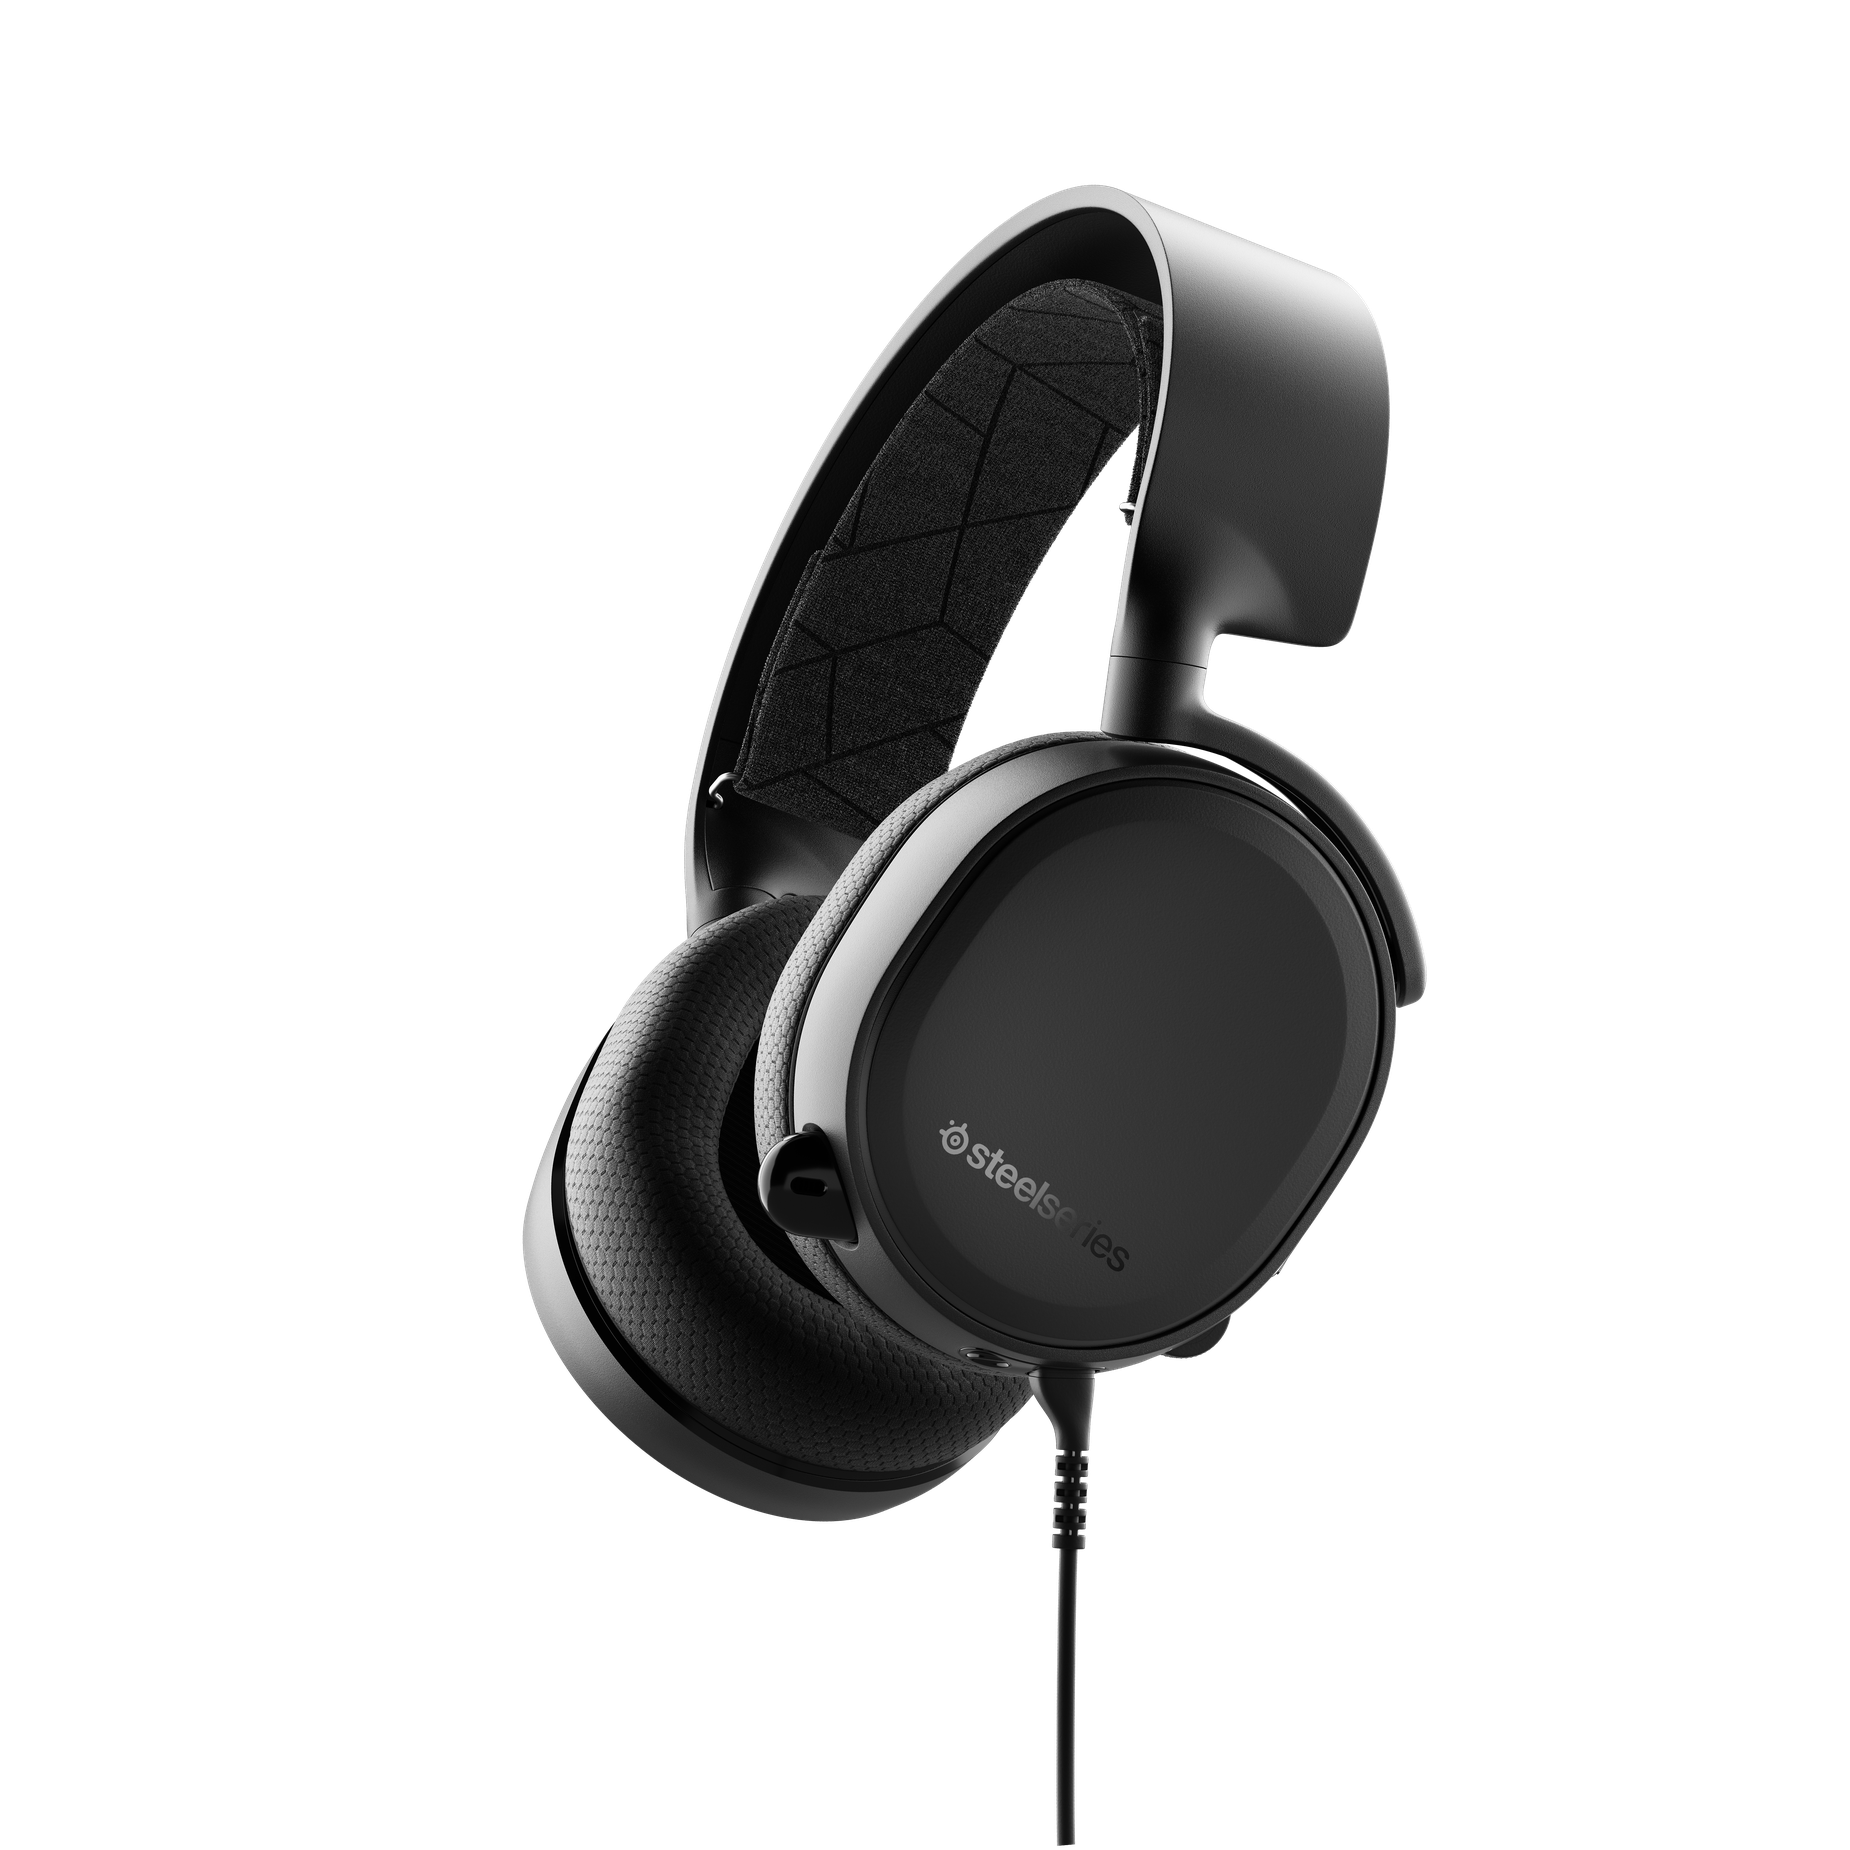 Side profile render of the headset